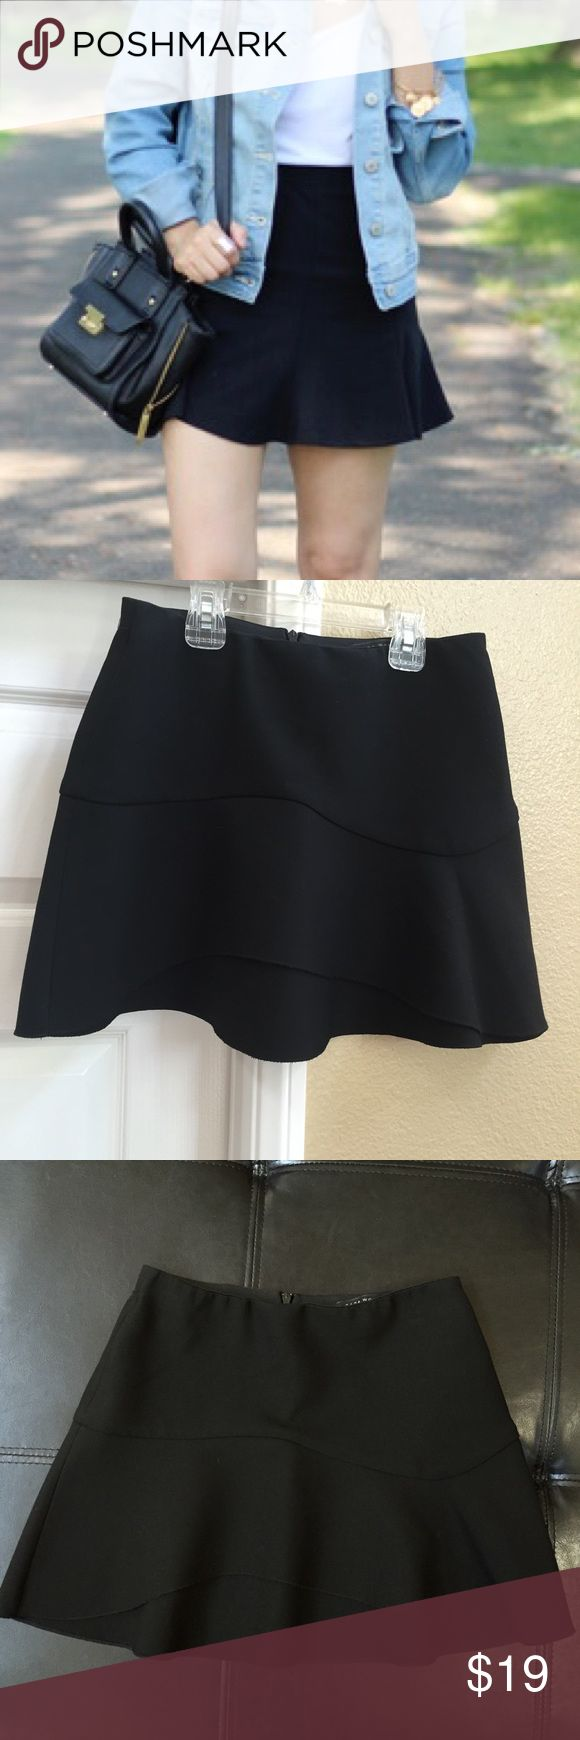 ZARA Black Skater Skirt Cutest black skater skirt by Zara. Main display photo is similar skirt, not the same one. Shows fit and length. The skirt for sale is the last three photos. Size XS. excellent condition worn once Zara Skirts Circle & Skater